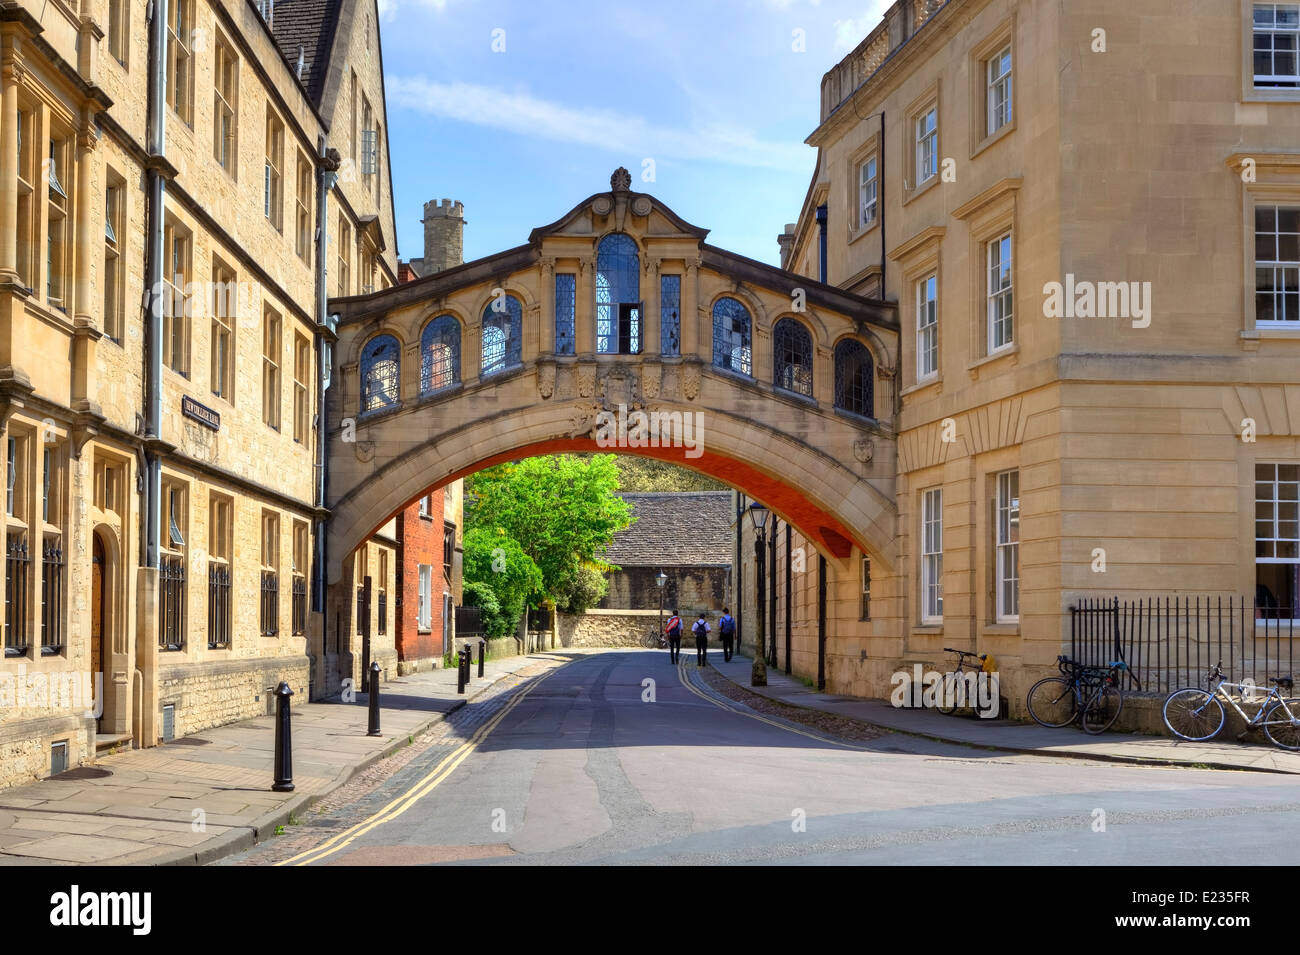 Pont des Soupirs, Oxford, Oxfordshire, Angleterre, Royaume-Uni Photo Stock